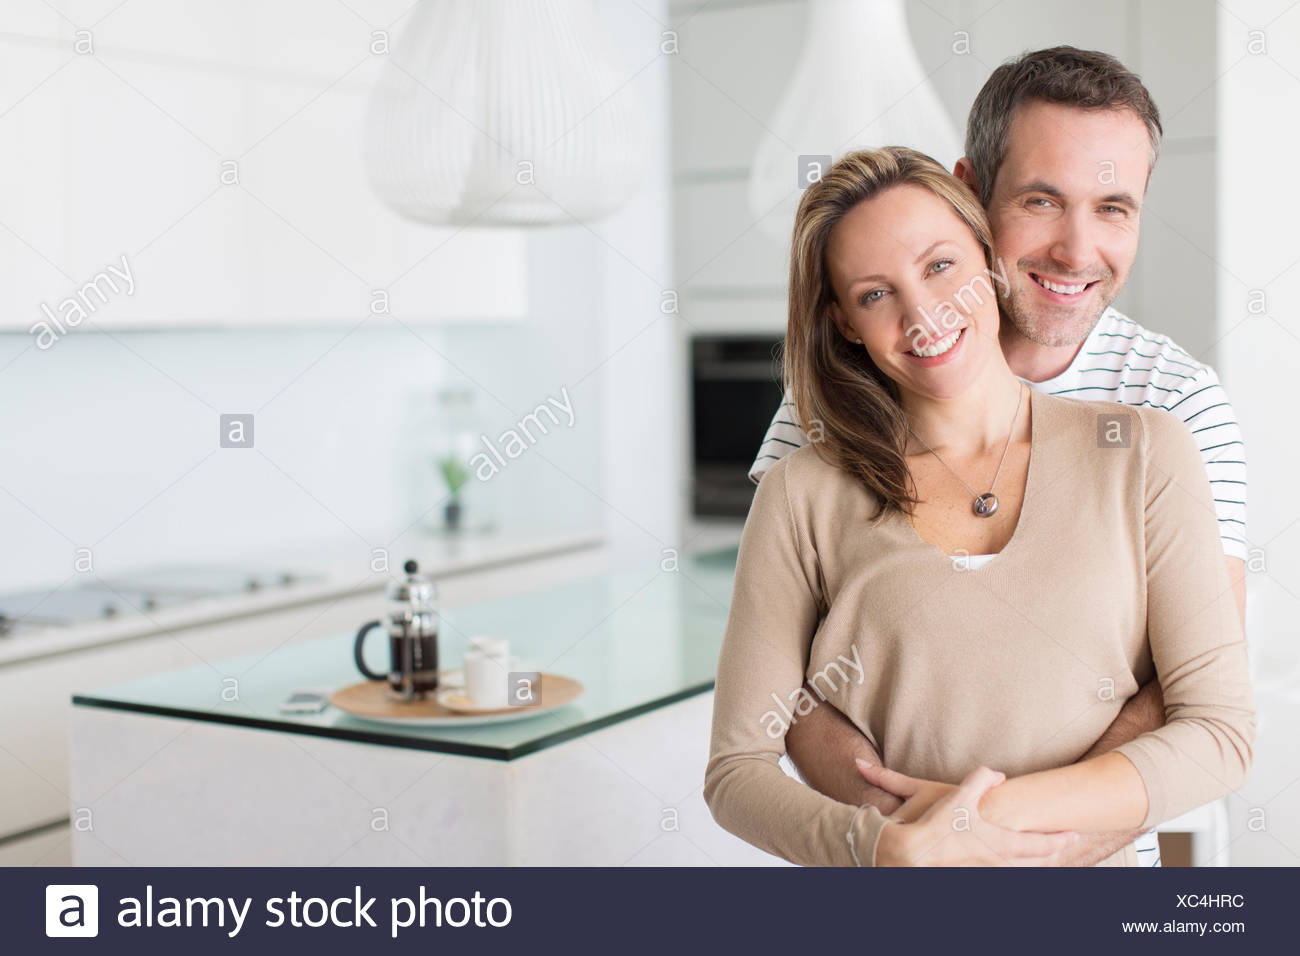 Couple hugging in modern kitchen - Stock Image